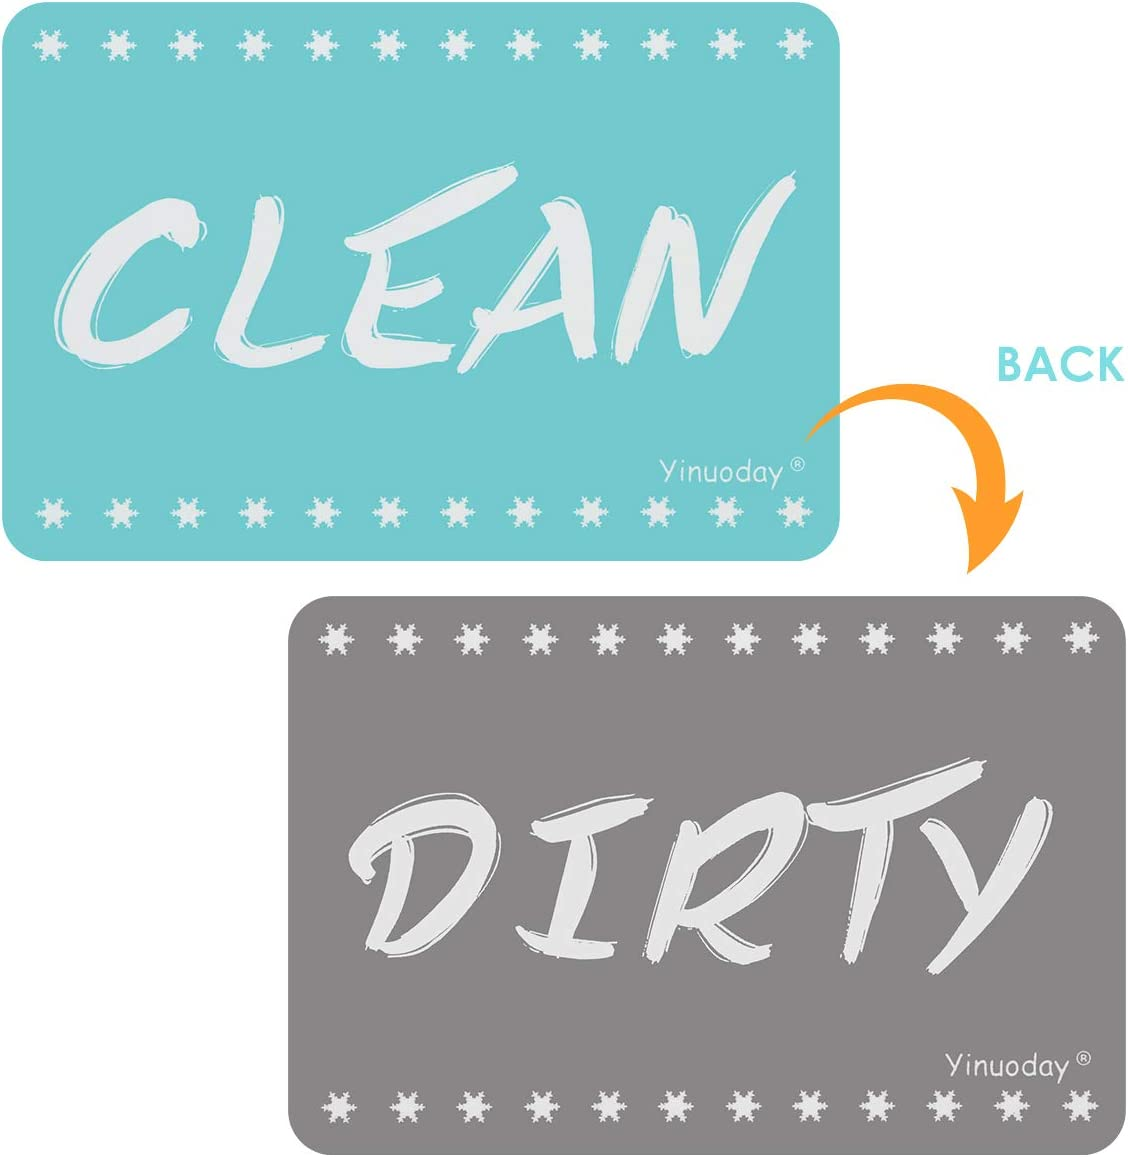 Yinuoday Dishwasher Magnet Clean Dirty Sign Suitable for All Dishwasher Strongest Magnet Double Sided Flip Dirty Clean Dishwasher Magnet Sign